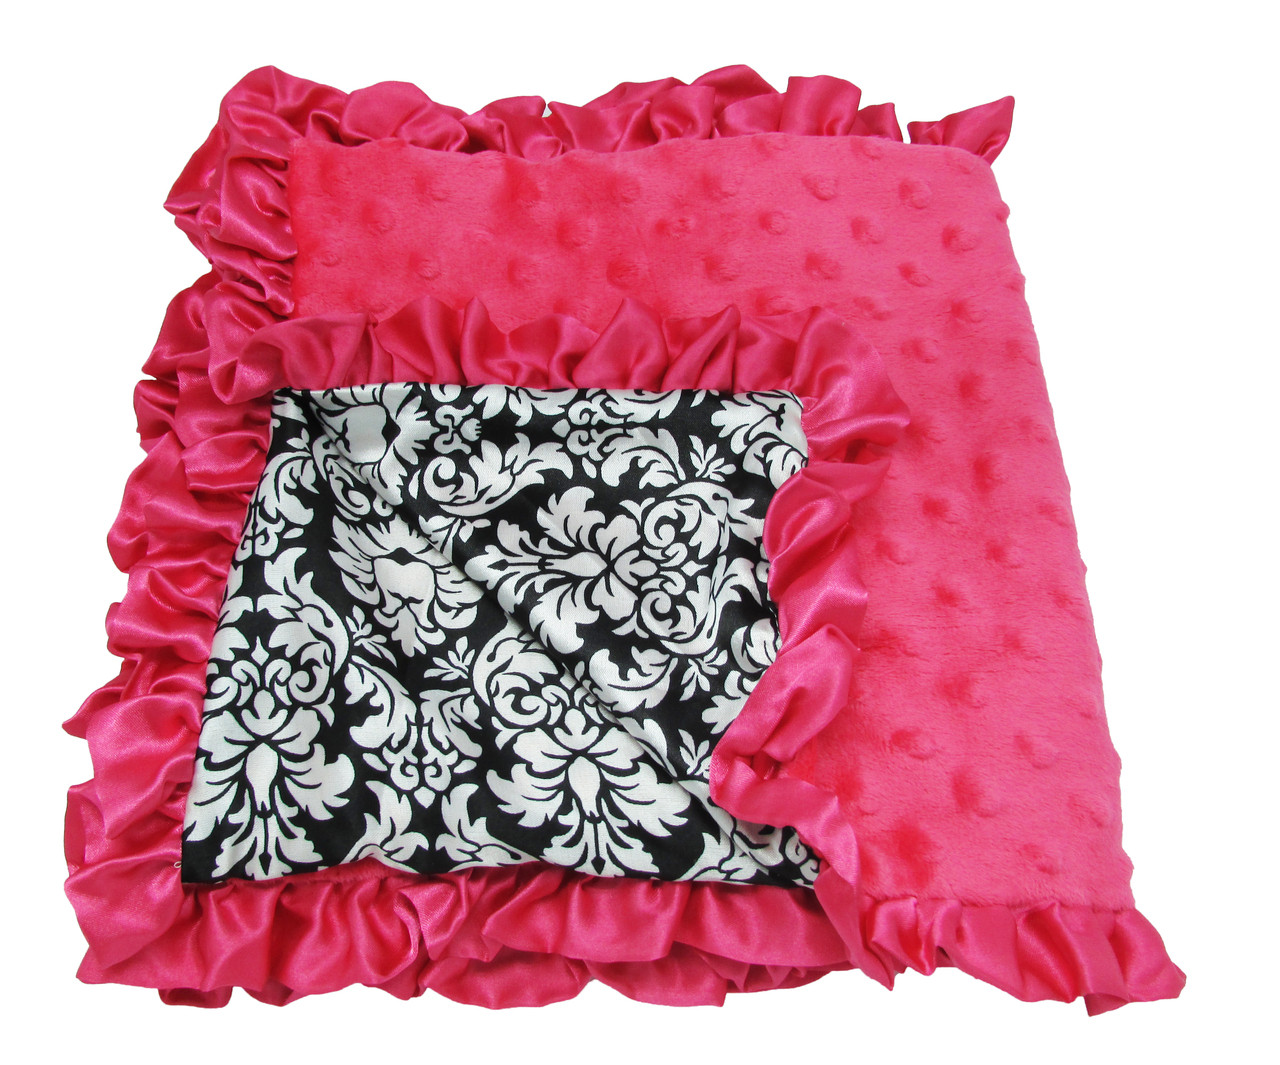 Baby Blankets Amp Accessories Hot Pink And Damask Minky